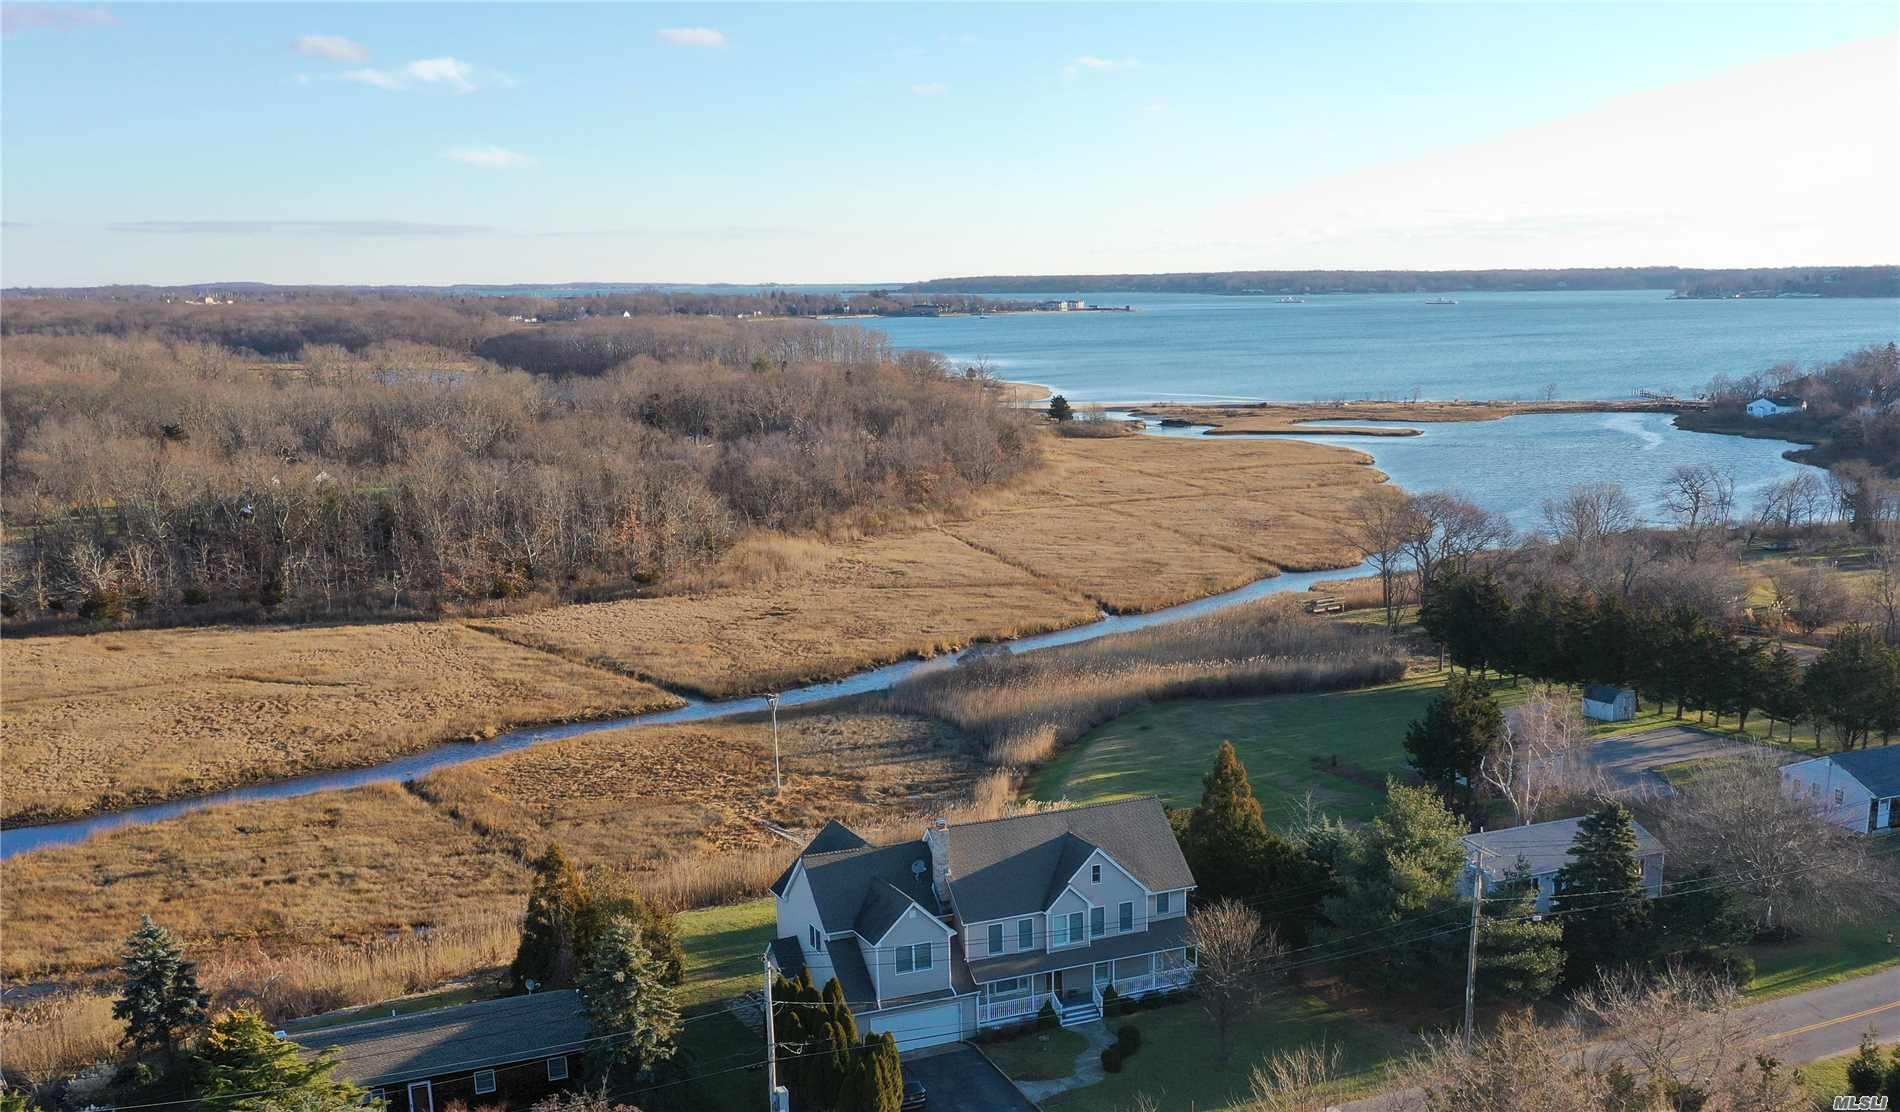 Rare Opportunity In Peconic Bay Estates! Waterfront 5 Br 3.5 Bath Single Family Home With An Accessory Apartment For Under A Million. Fully Renovated In 2005. 2nd Floor Includes 3 Br, 2 Bath And 1st Floor Is 1-2 Br, 1.5 Bath, Office.